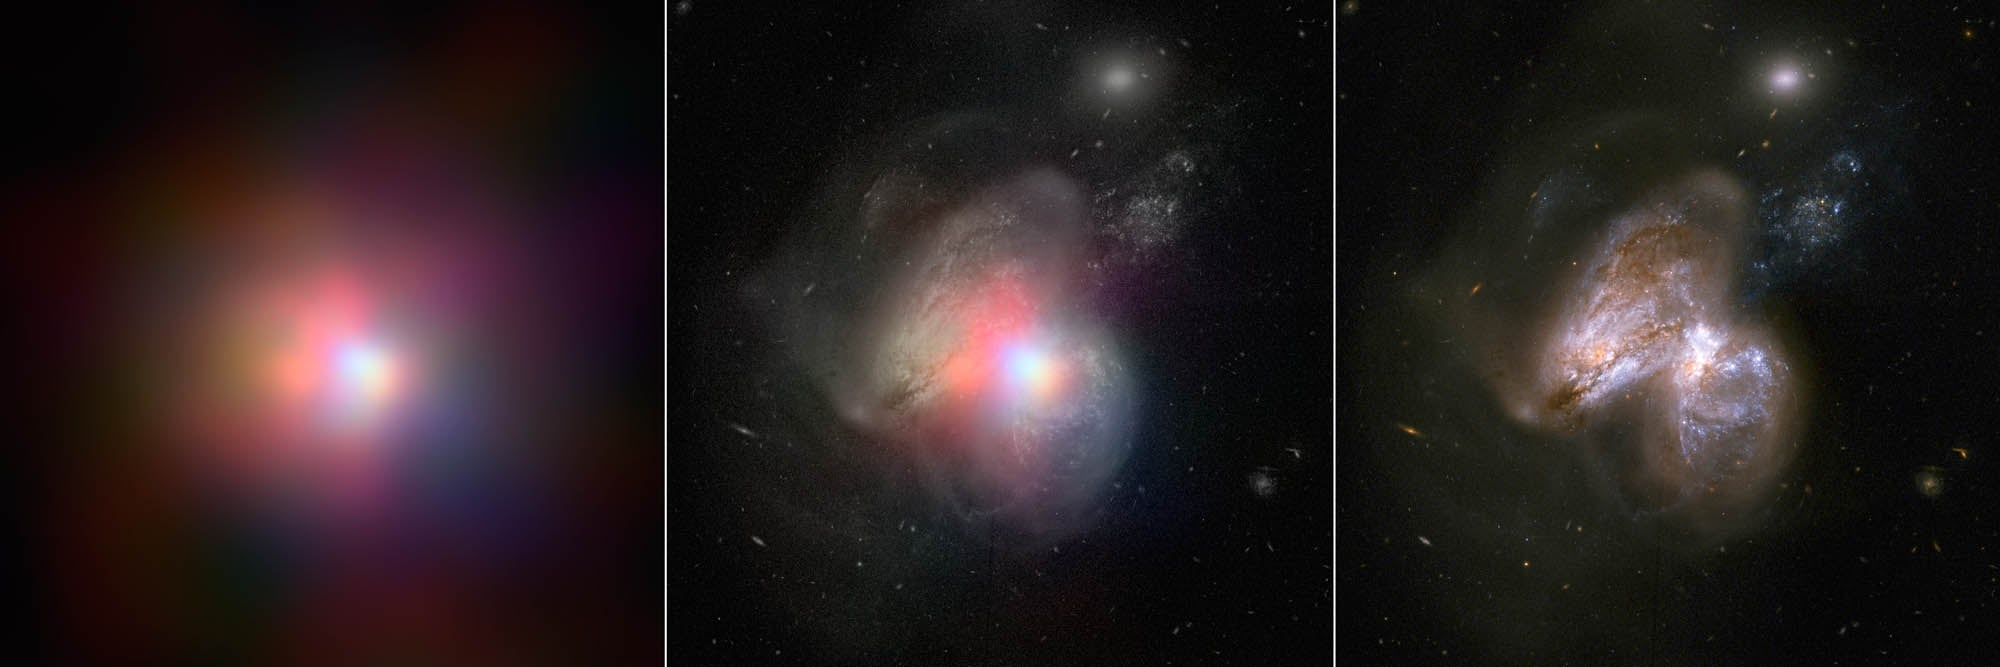 Here Are Two Galaxies With Supermassive Black Hole Hearts Colliding